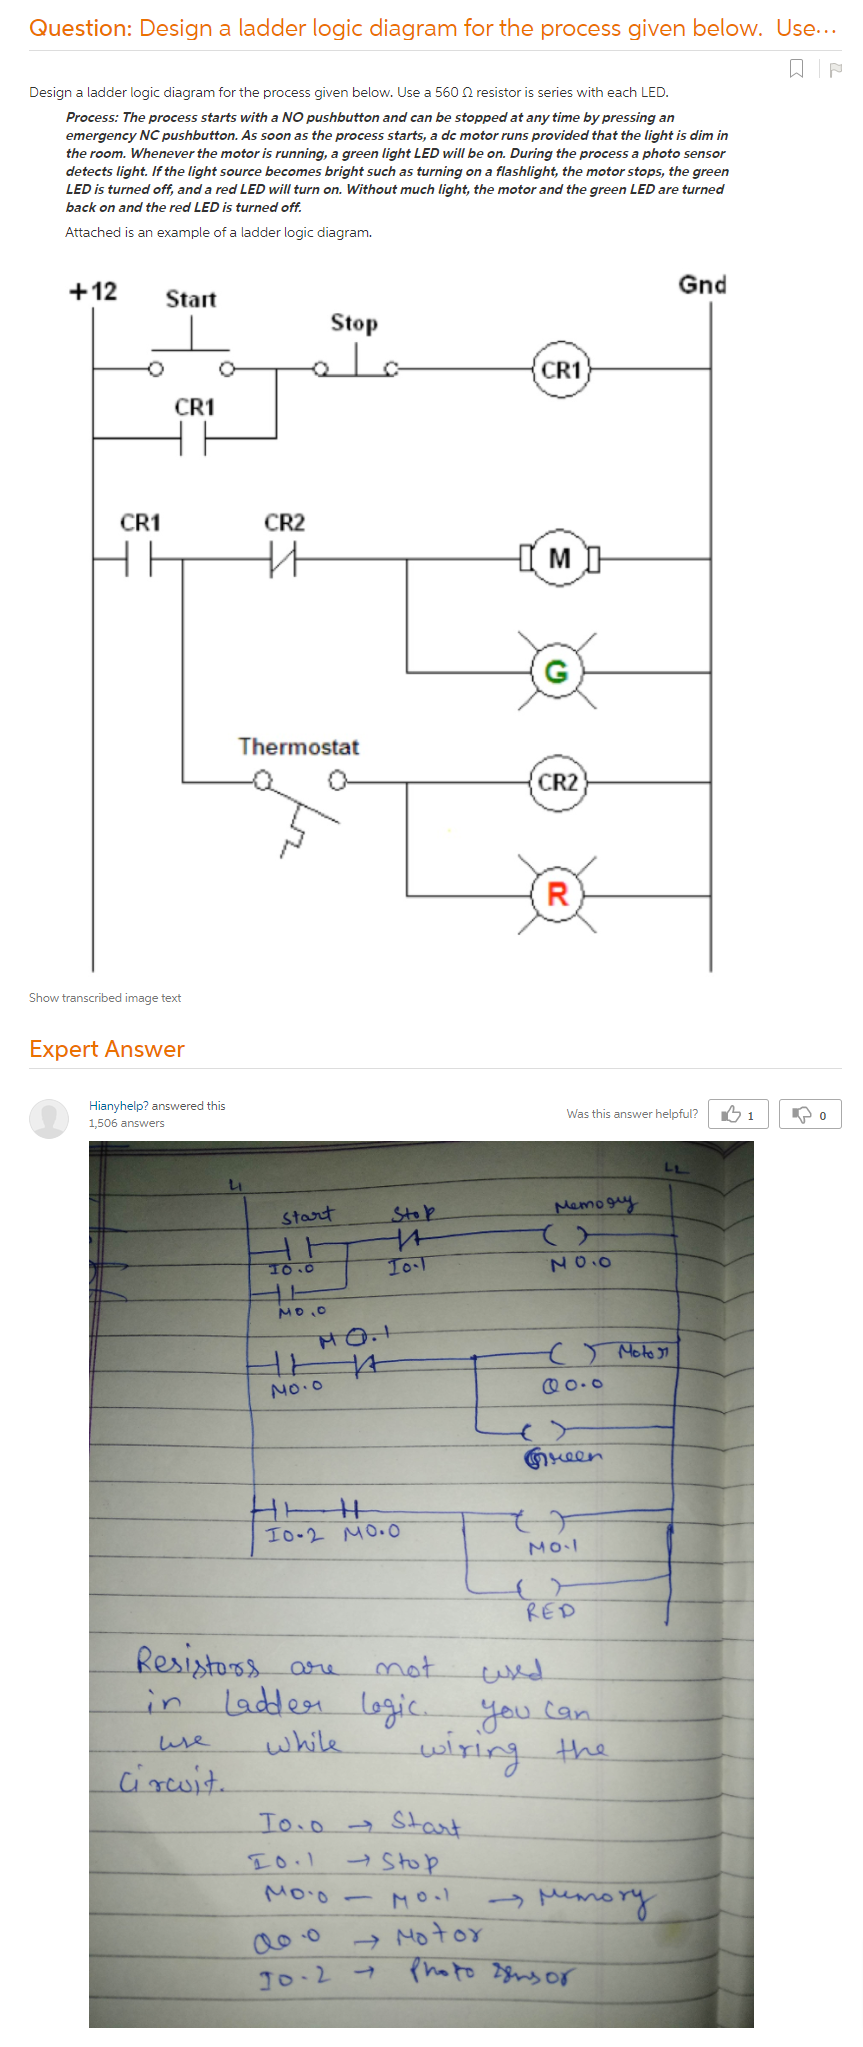 Design A Ladder Logic Diagram For The Process Given Below. Use A 560 Ω  Resistor Is Series With Each LED. Process: The Process Starts With A NO  Pushbutton And Can Be Stopped At Any Time By Pressing An Emergency NC  Pushbutton. As Soon As The Process Starts, A Dc Motor Runs Provided That  The Light Is Dim In The Room. Whenever The Motor Is Running, A ...